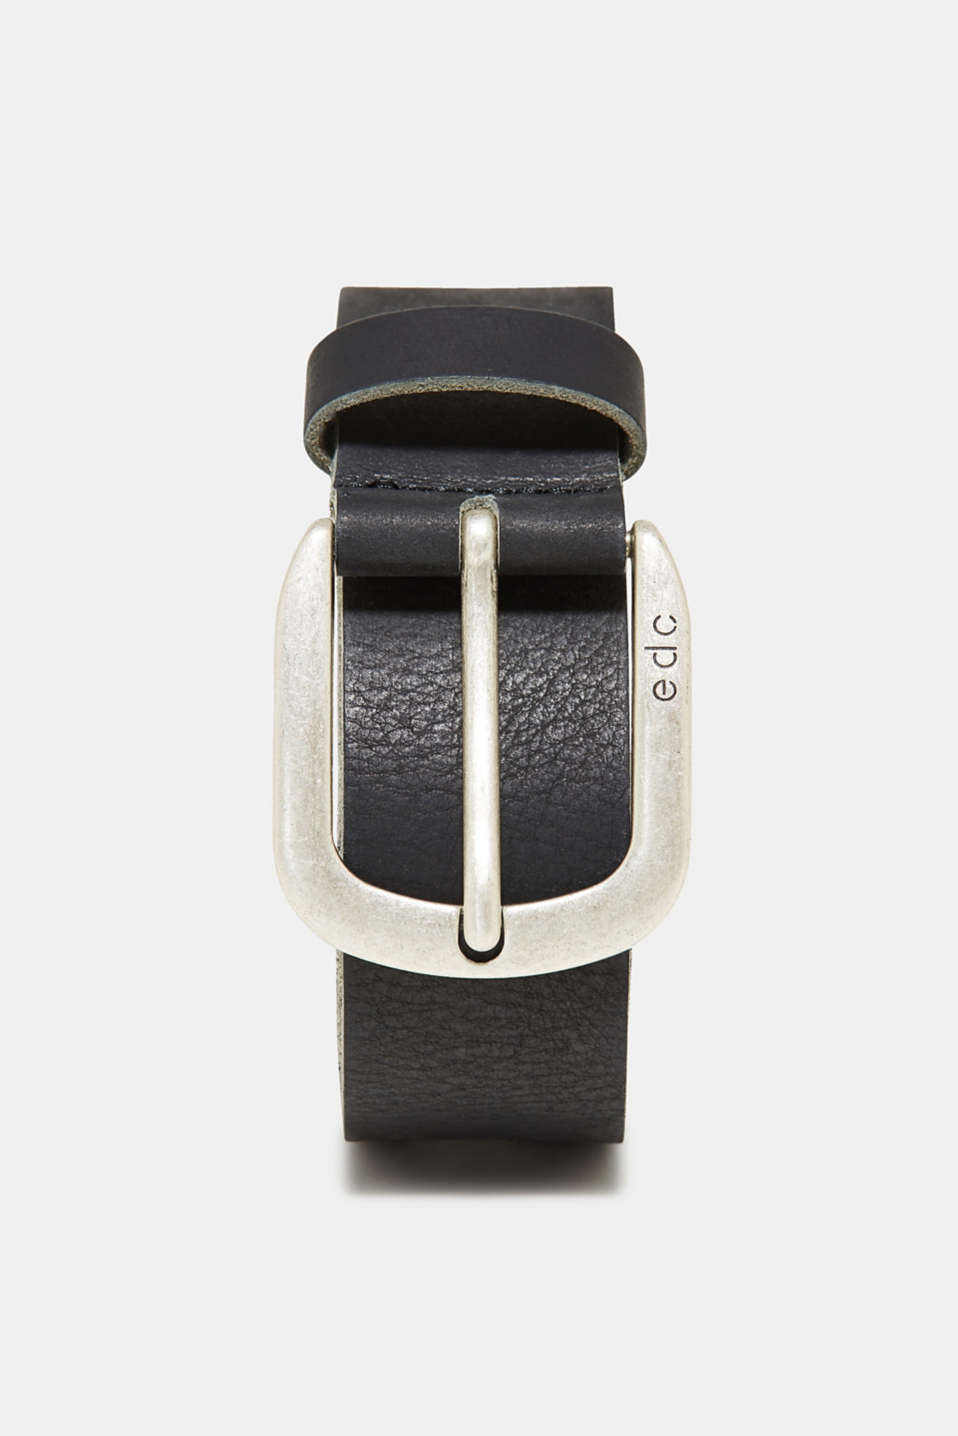 An classic with denim: wide buffalo leather belt with a distinctive metal buckle